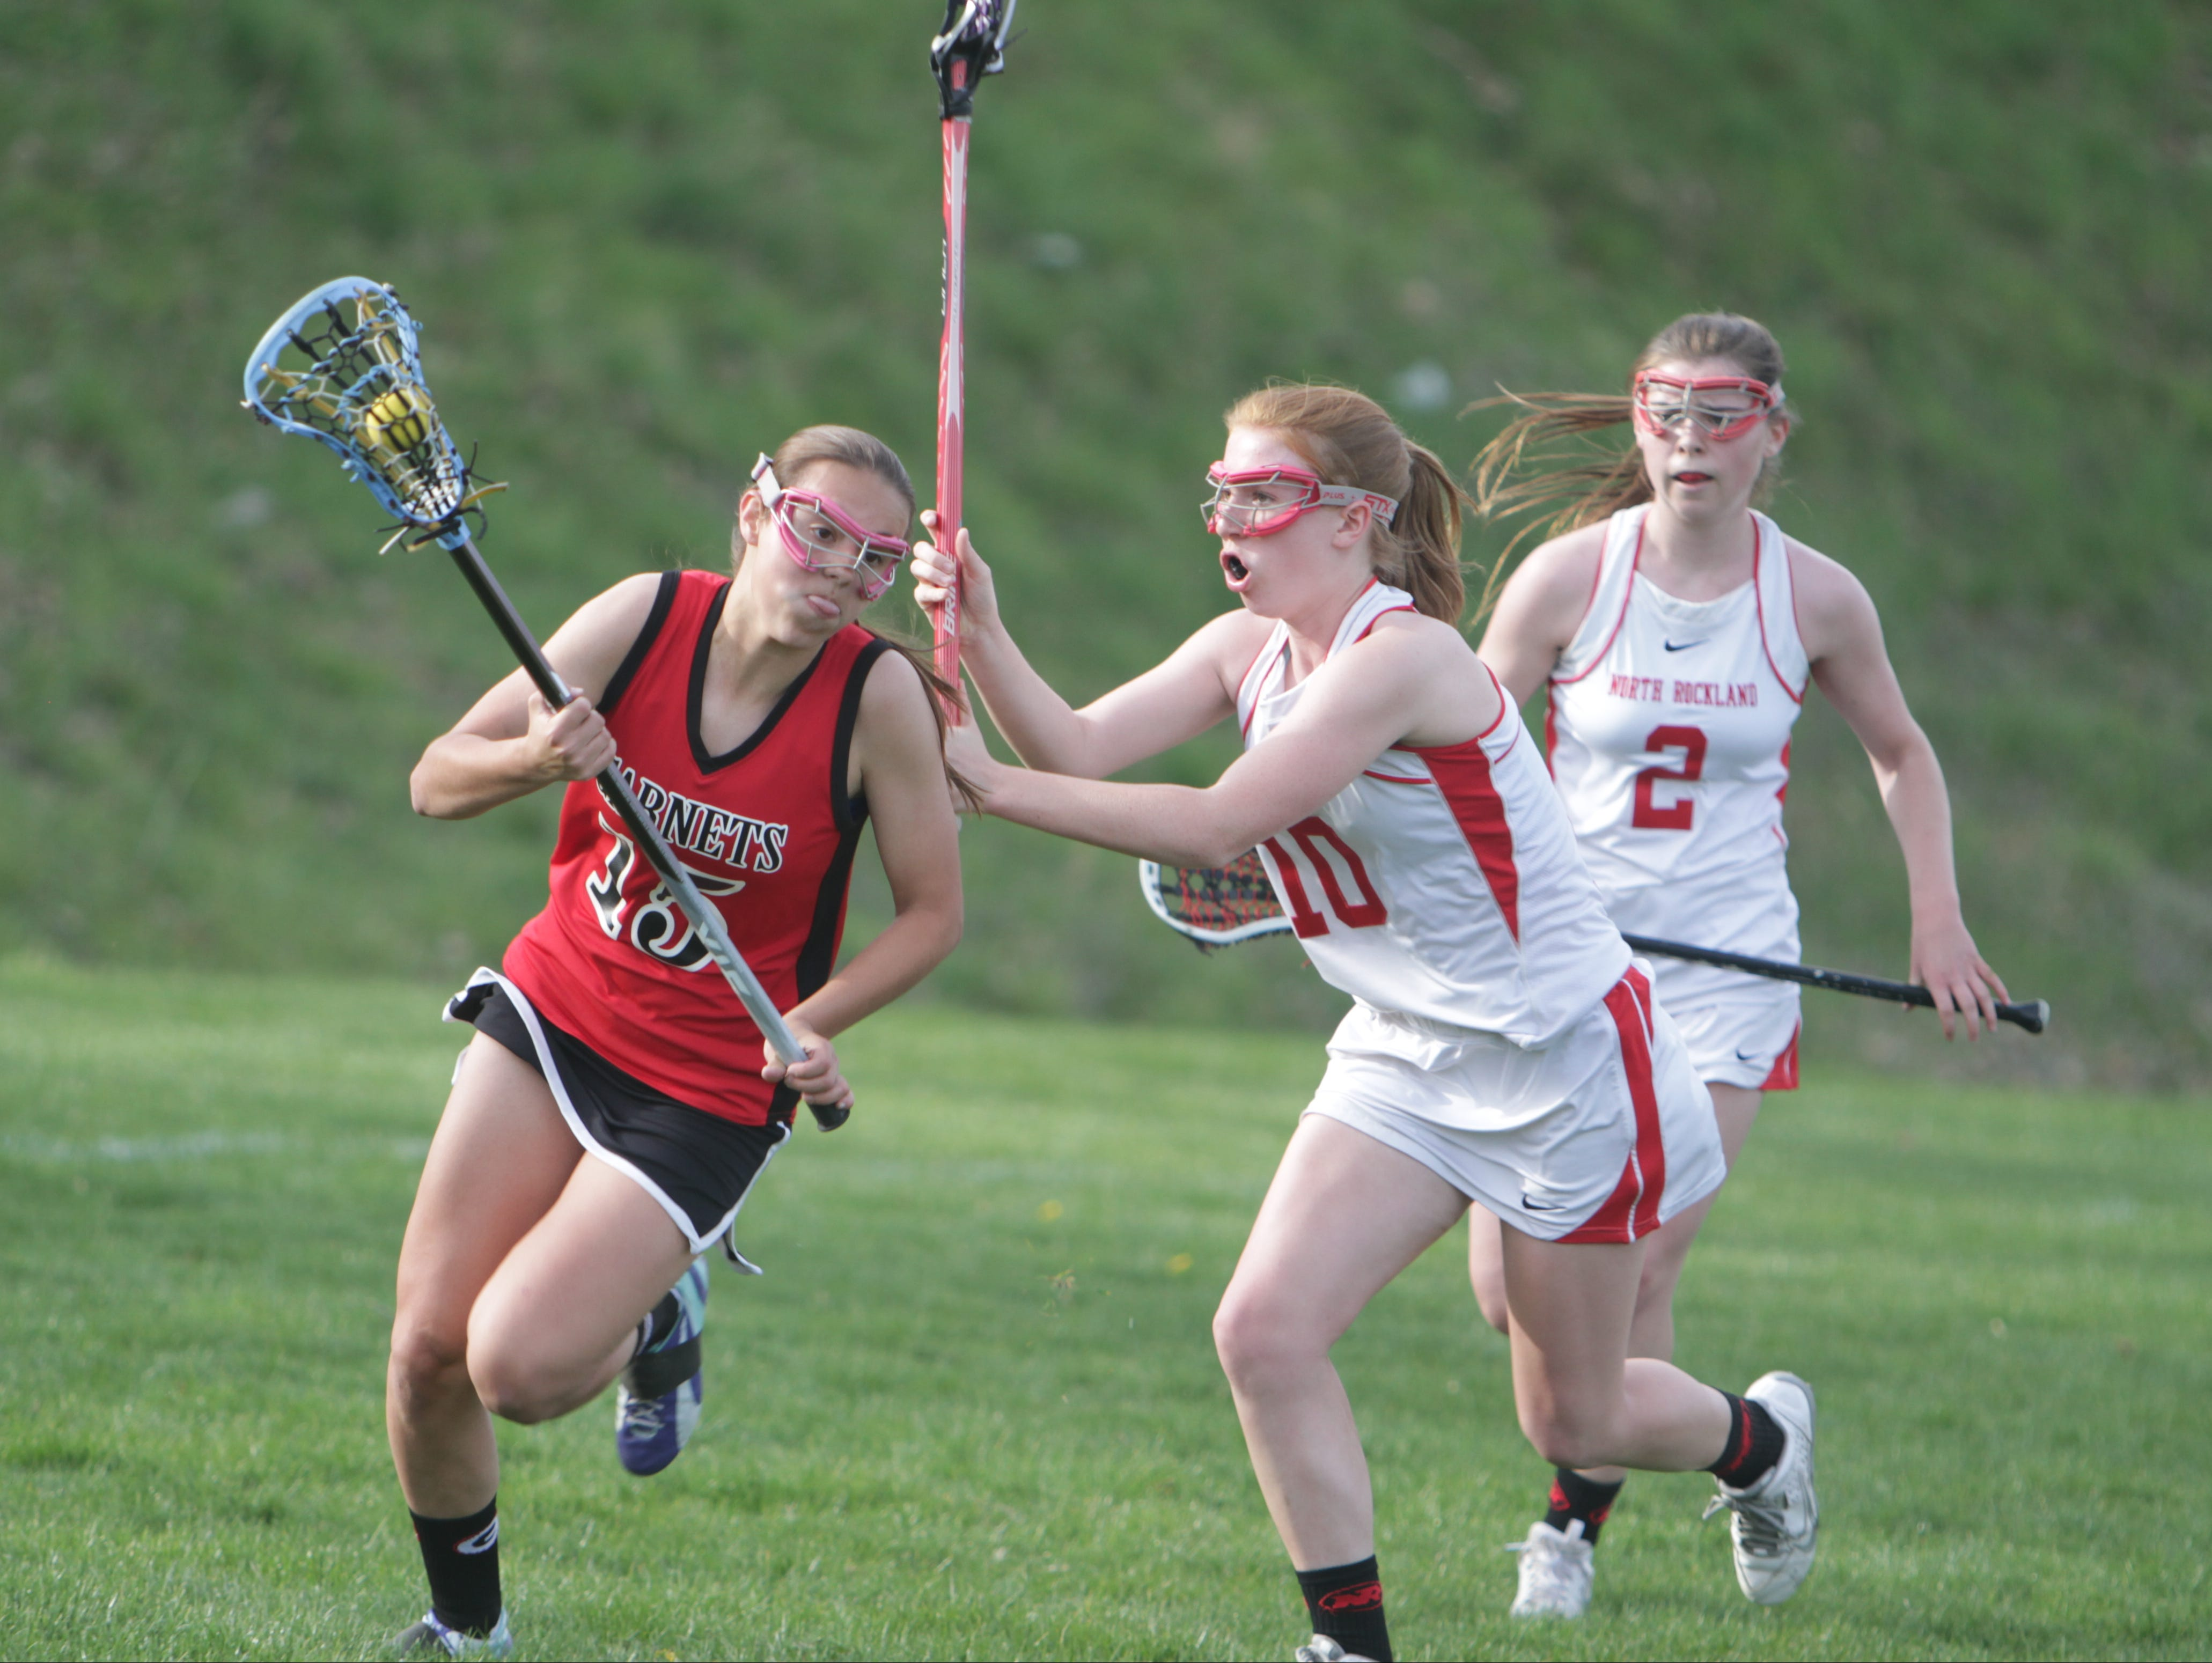 Action during a Section 1 girls lacrosse game between North Rockland and Rye at North Rockland High School on April 18. North Rockland won 10-5.